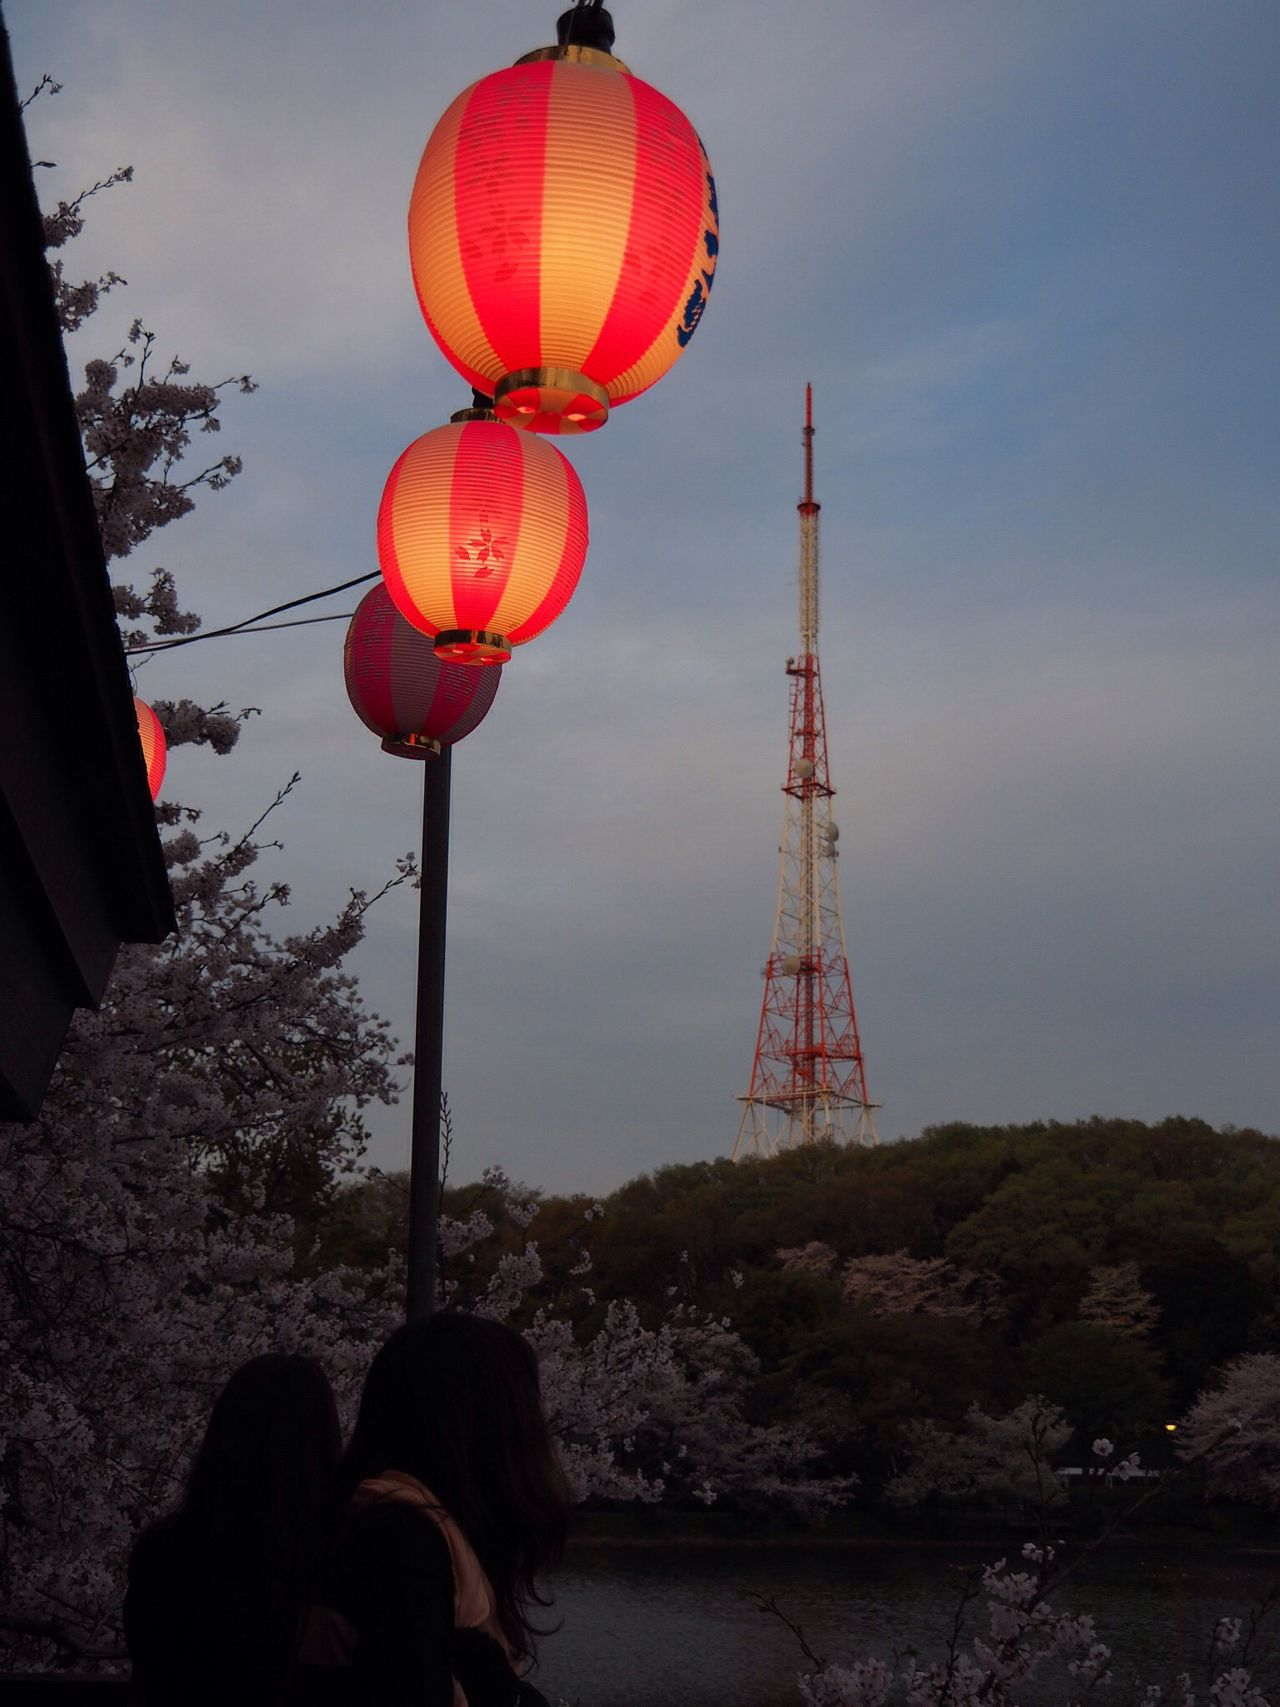 Sakura Season Sakura Sakura2016 Sakura Festival Enjoying The View Asian Culture Asian  Spring Season Spring Enjoying Life EyeEM Photos EyeEm Gallery